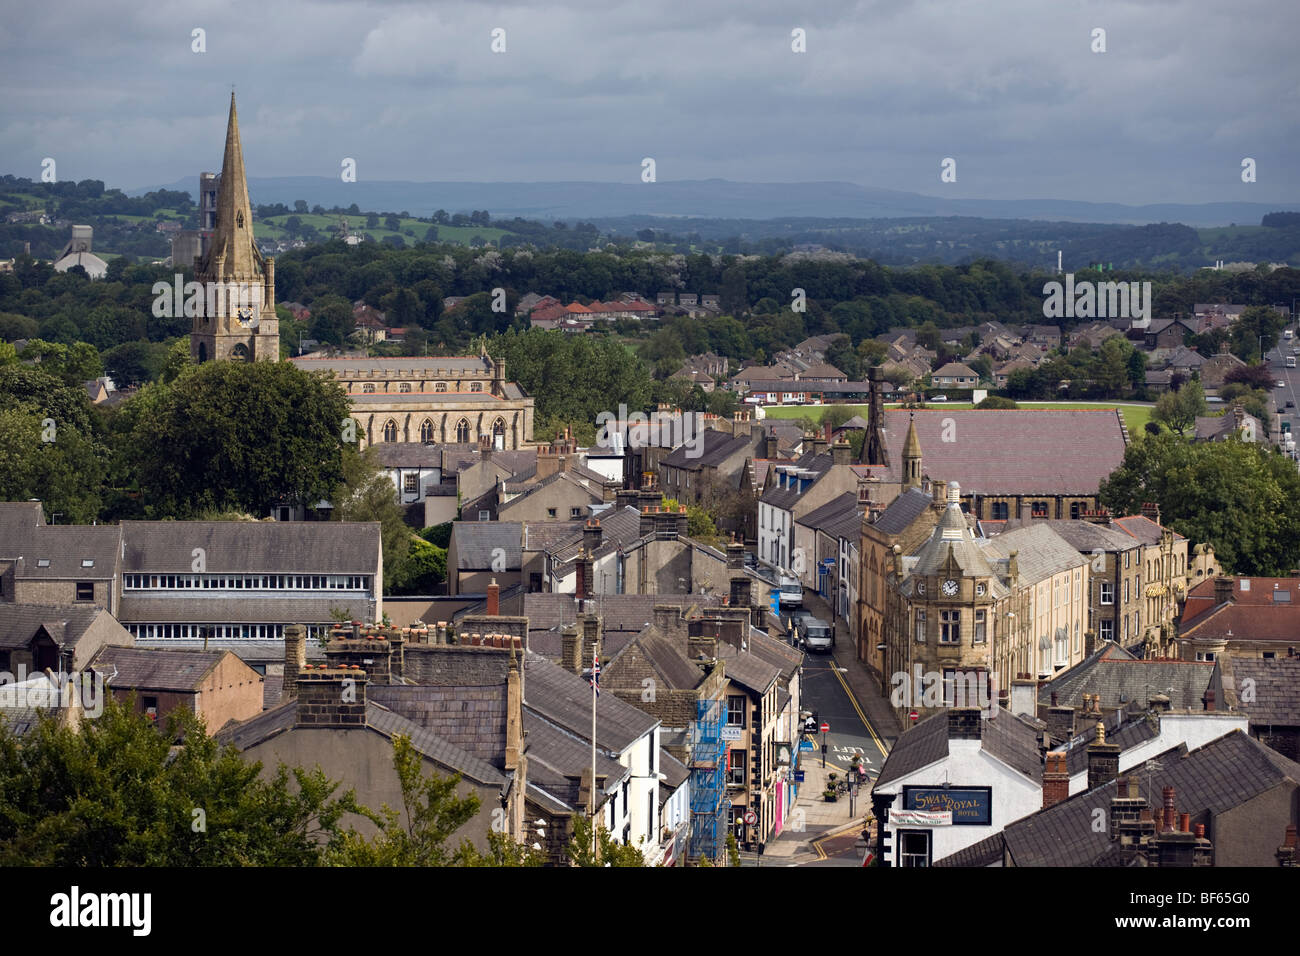 Aerial view of Clitheroe town from Clitheroe Castle - Stock Image